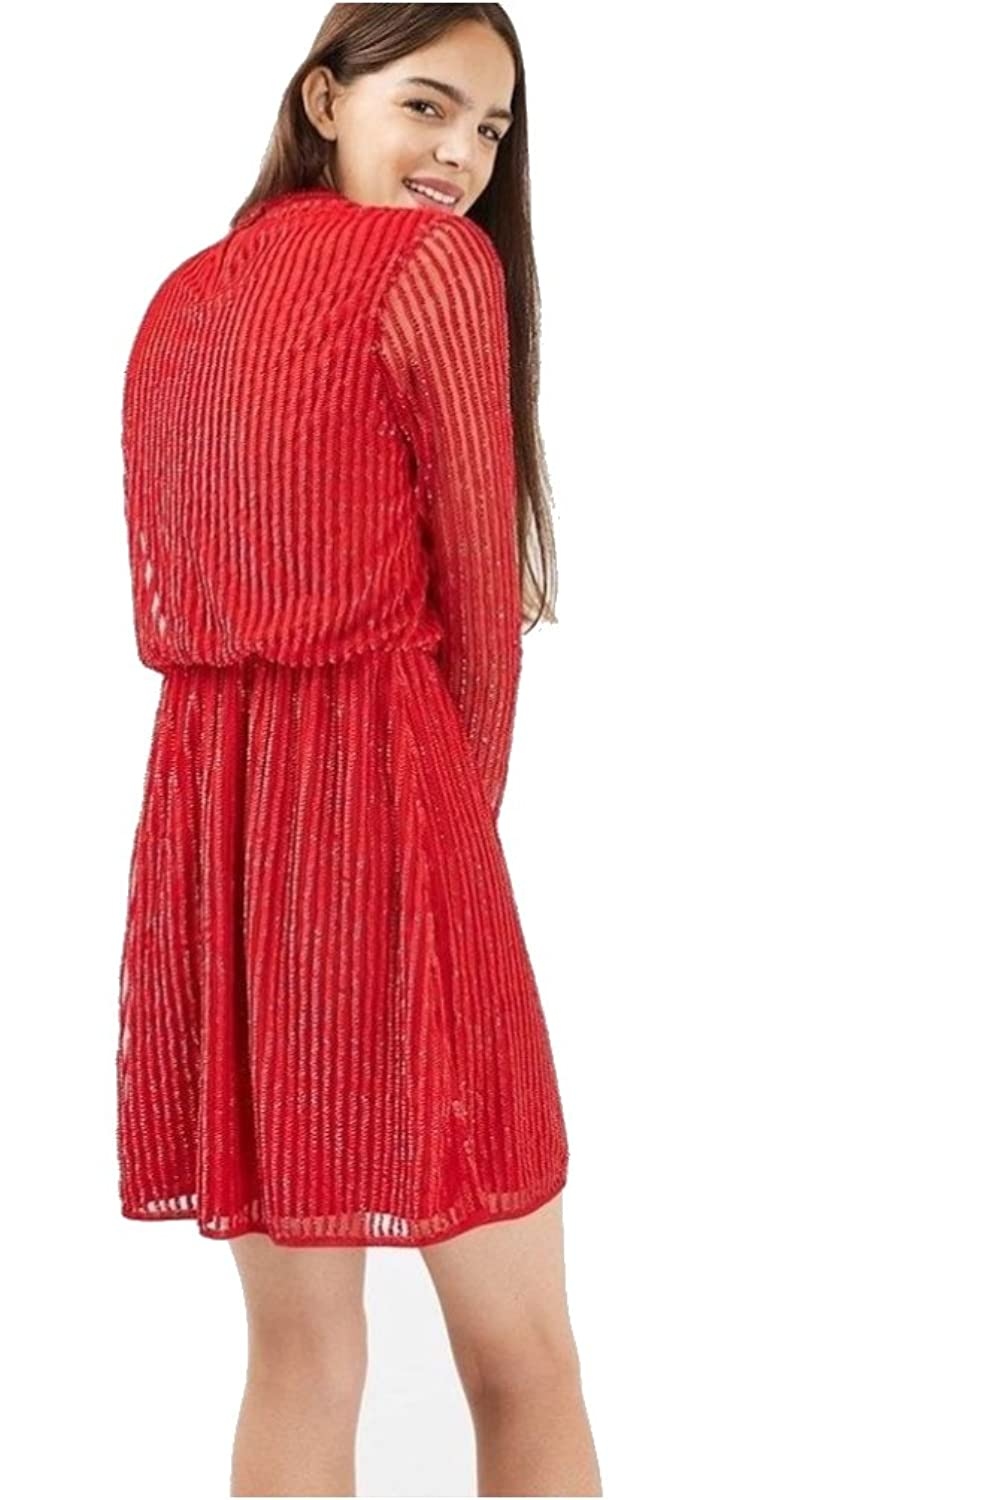 Top Shop Topshop Red Sequin 80s Roll Neck Skater Dress (38 US 6) at Amazon Womens Clothing store: